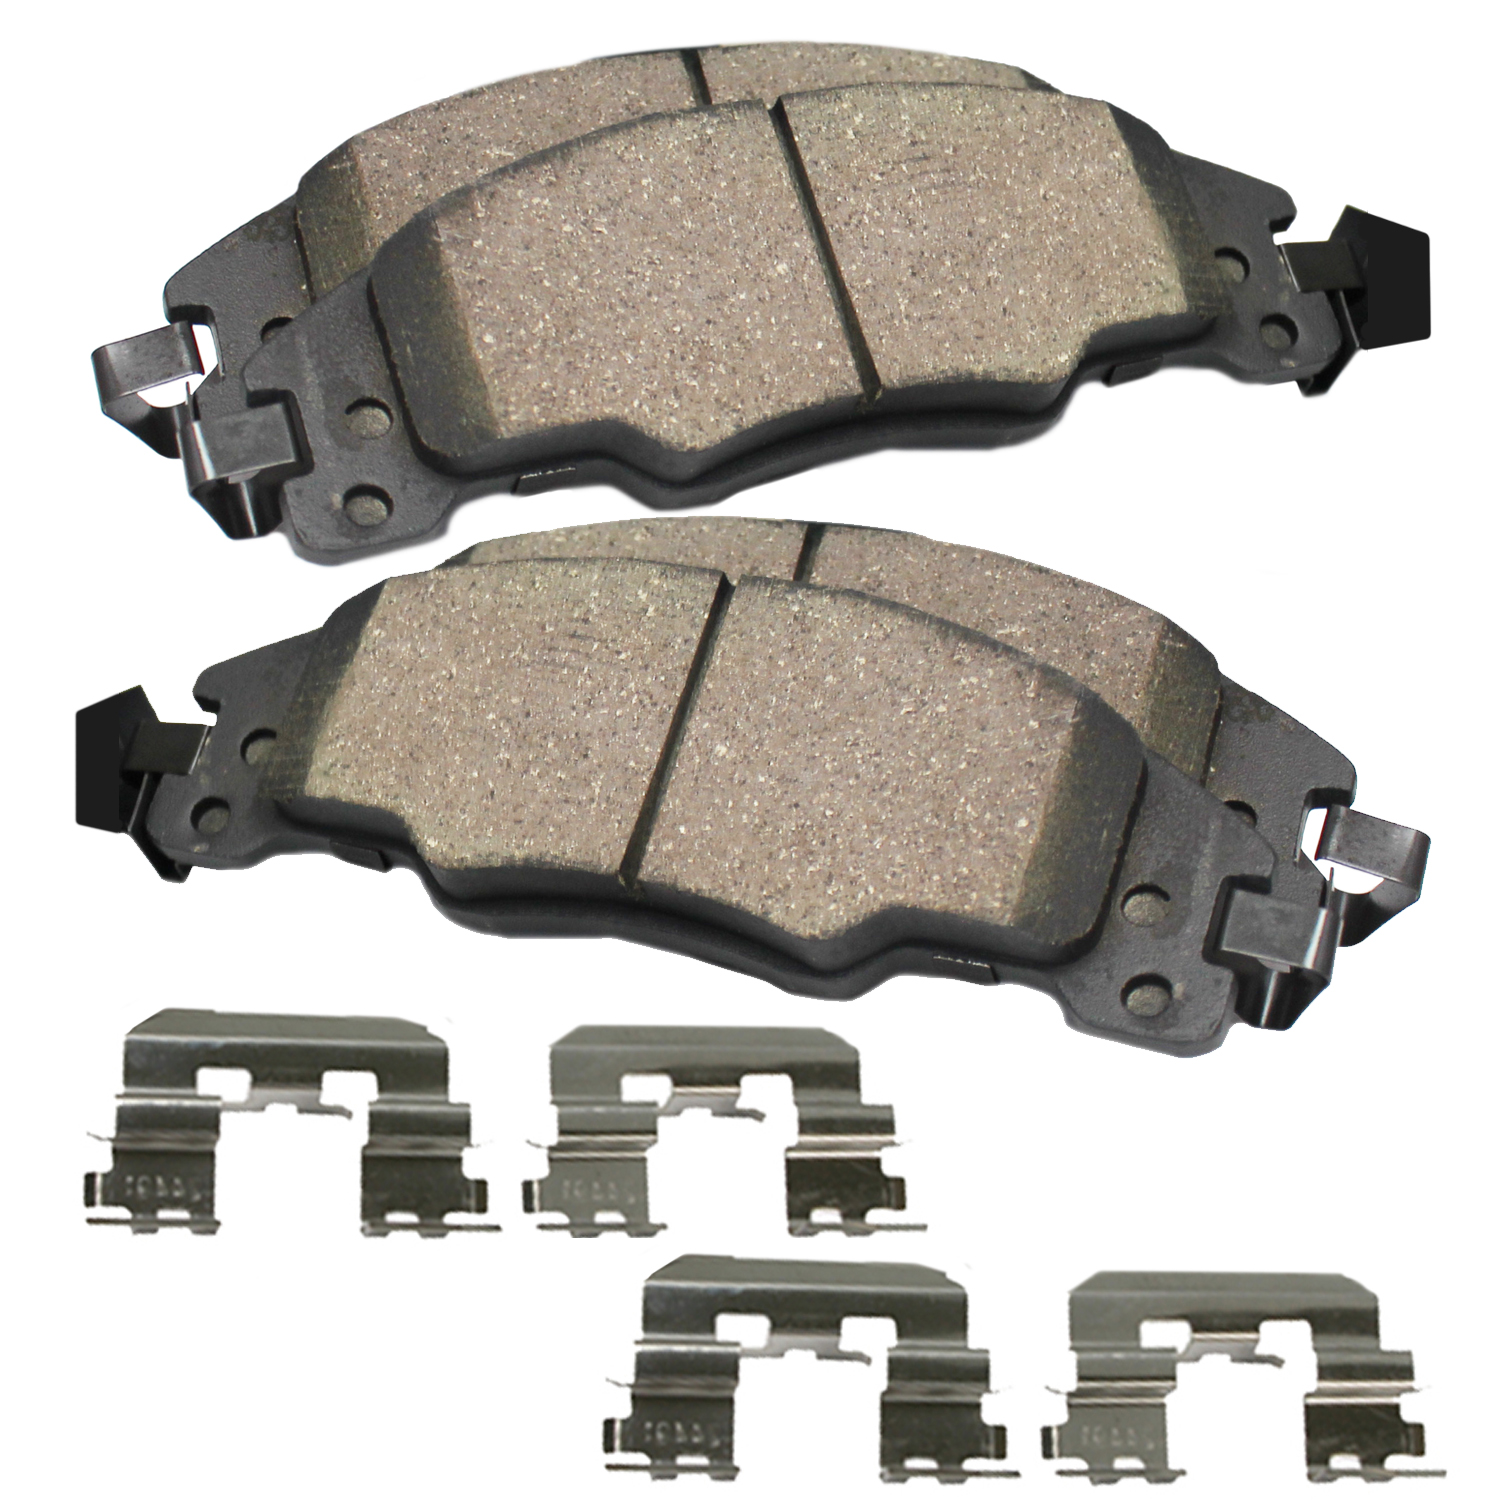 Front Ceramic Brake Pads for Hyundai Santa Fe, XG300 - See Fitment